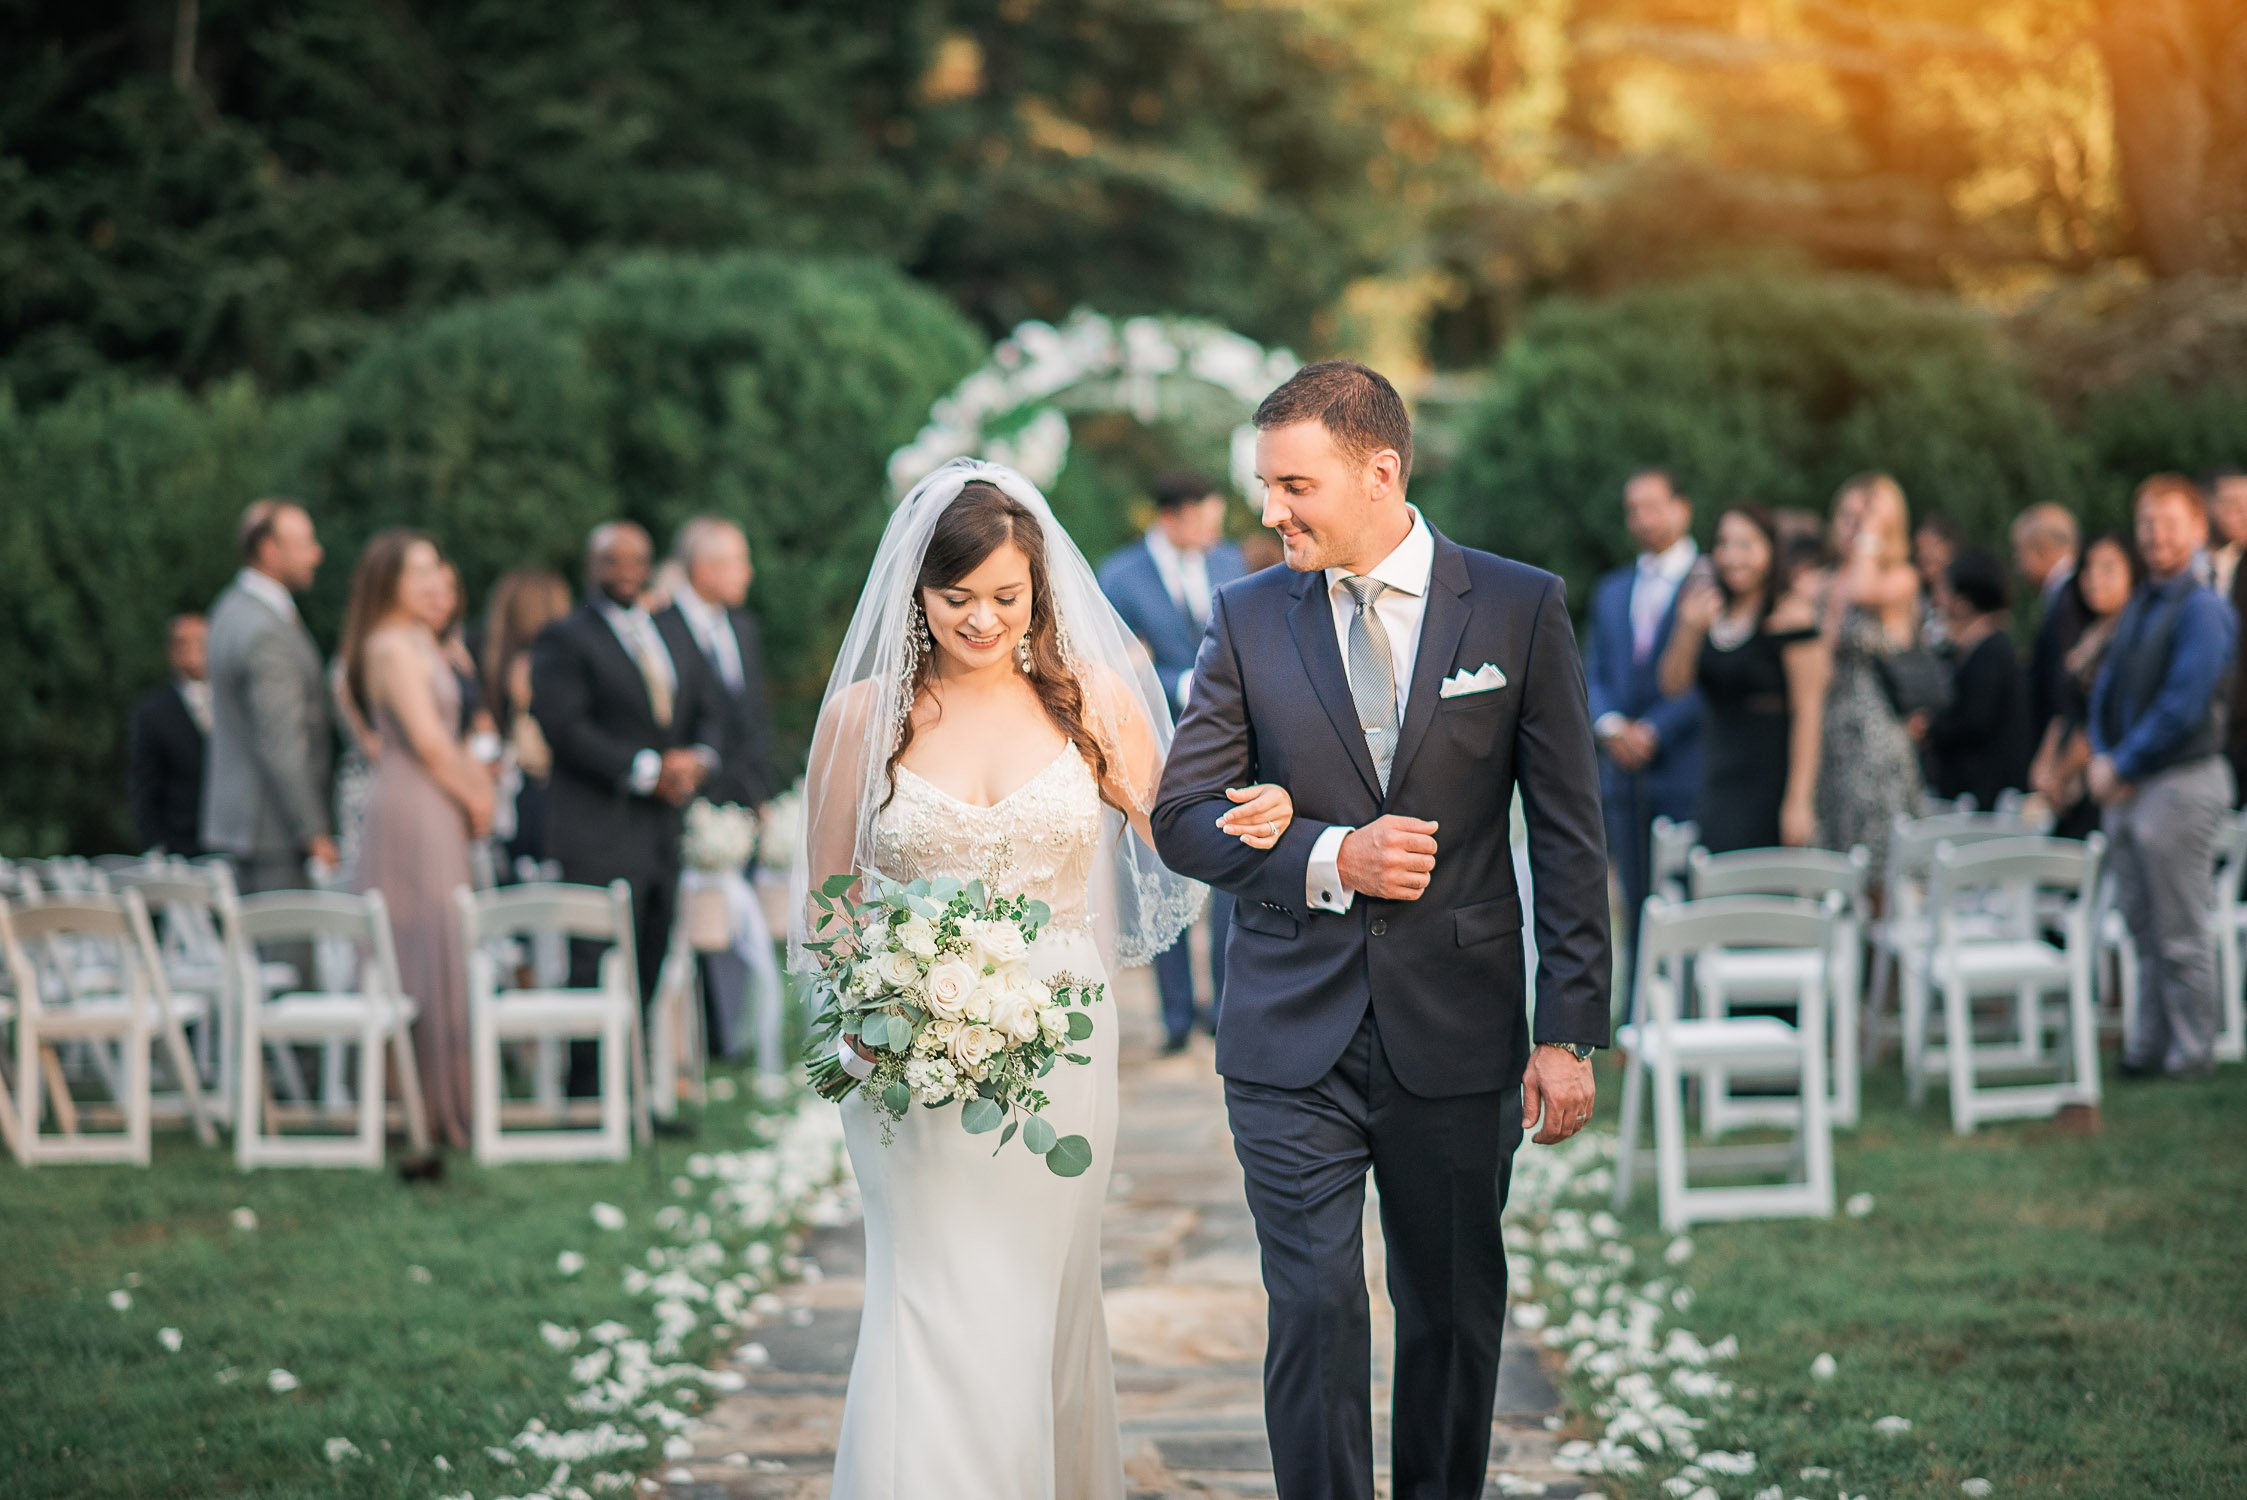 Outdoor Summer Wedding Ceremony in Rust Manor House, Leesburg, VA